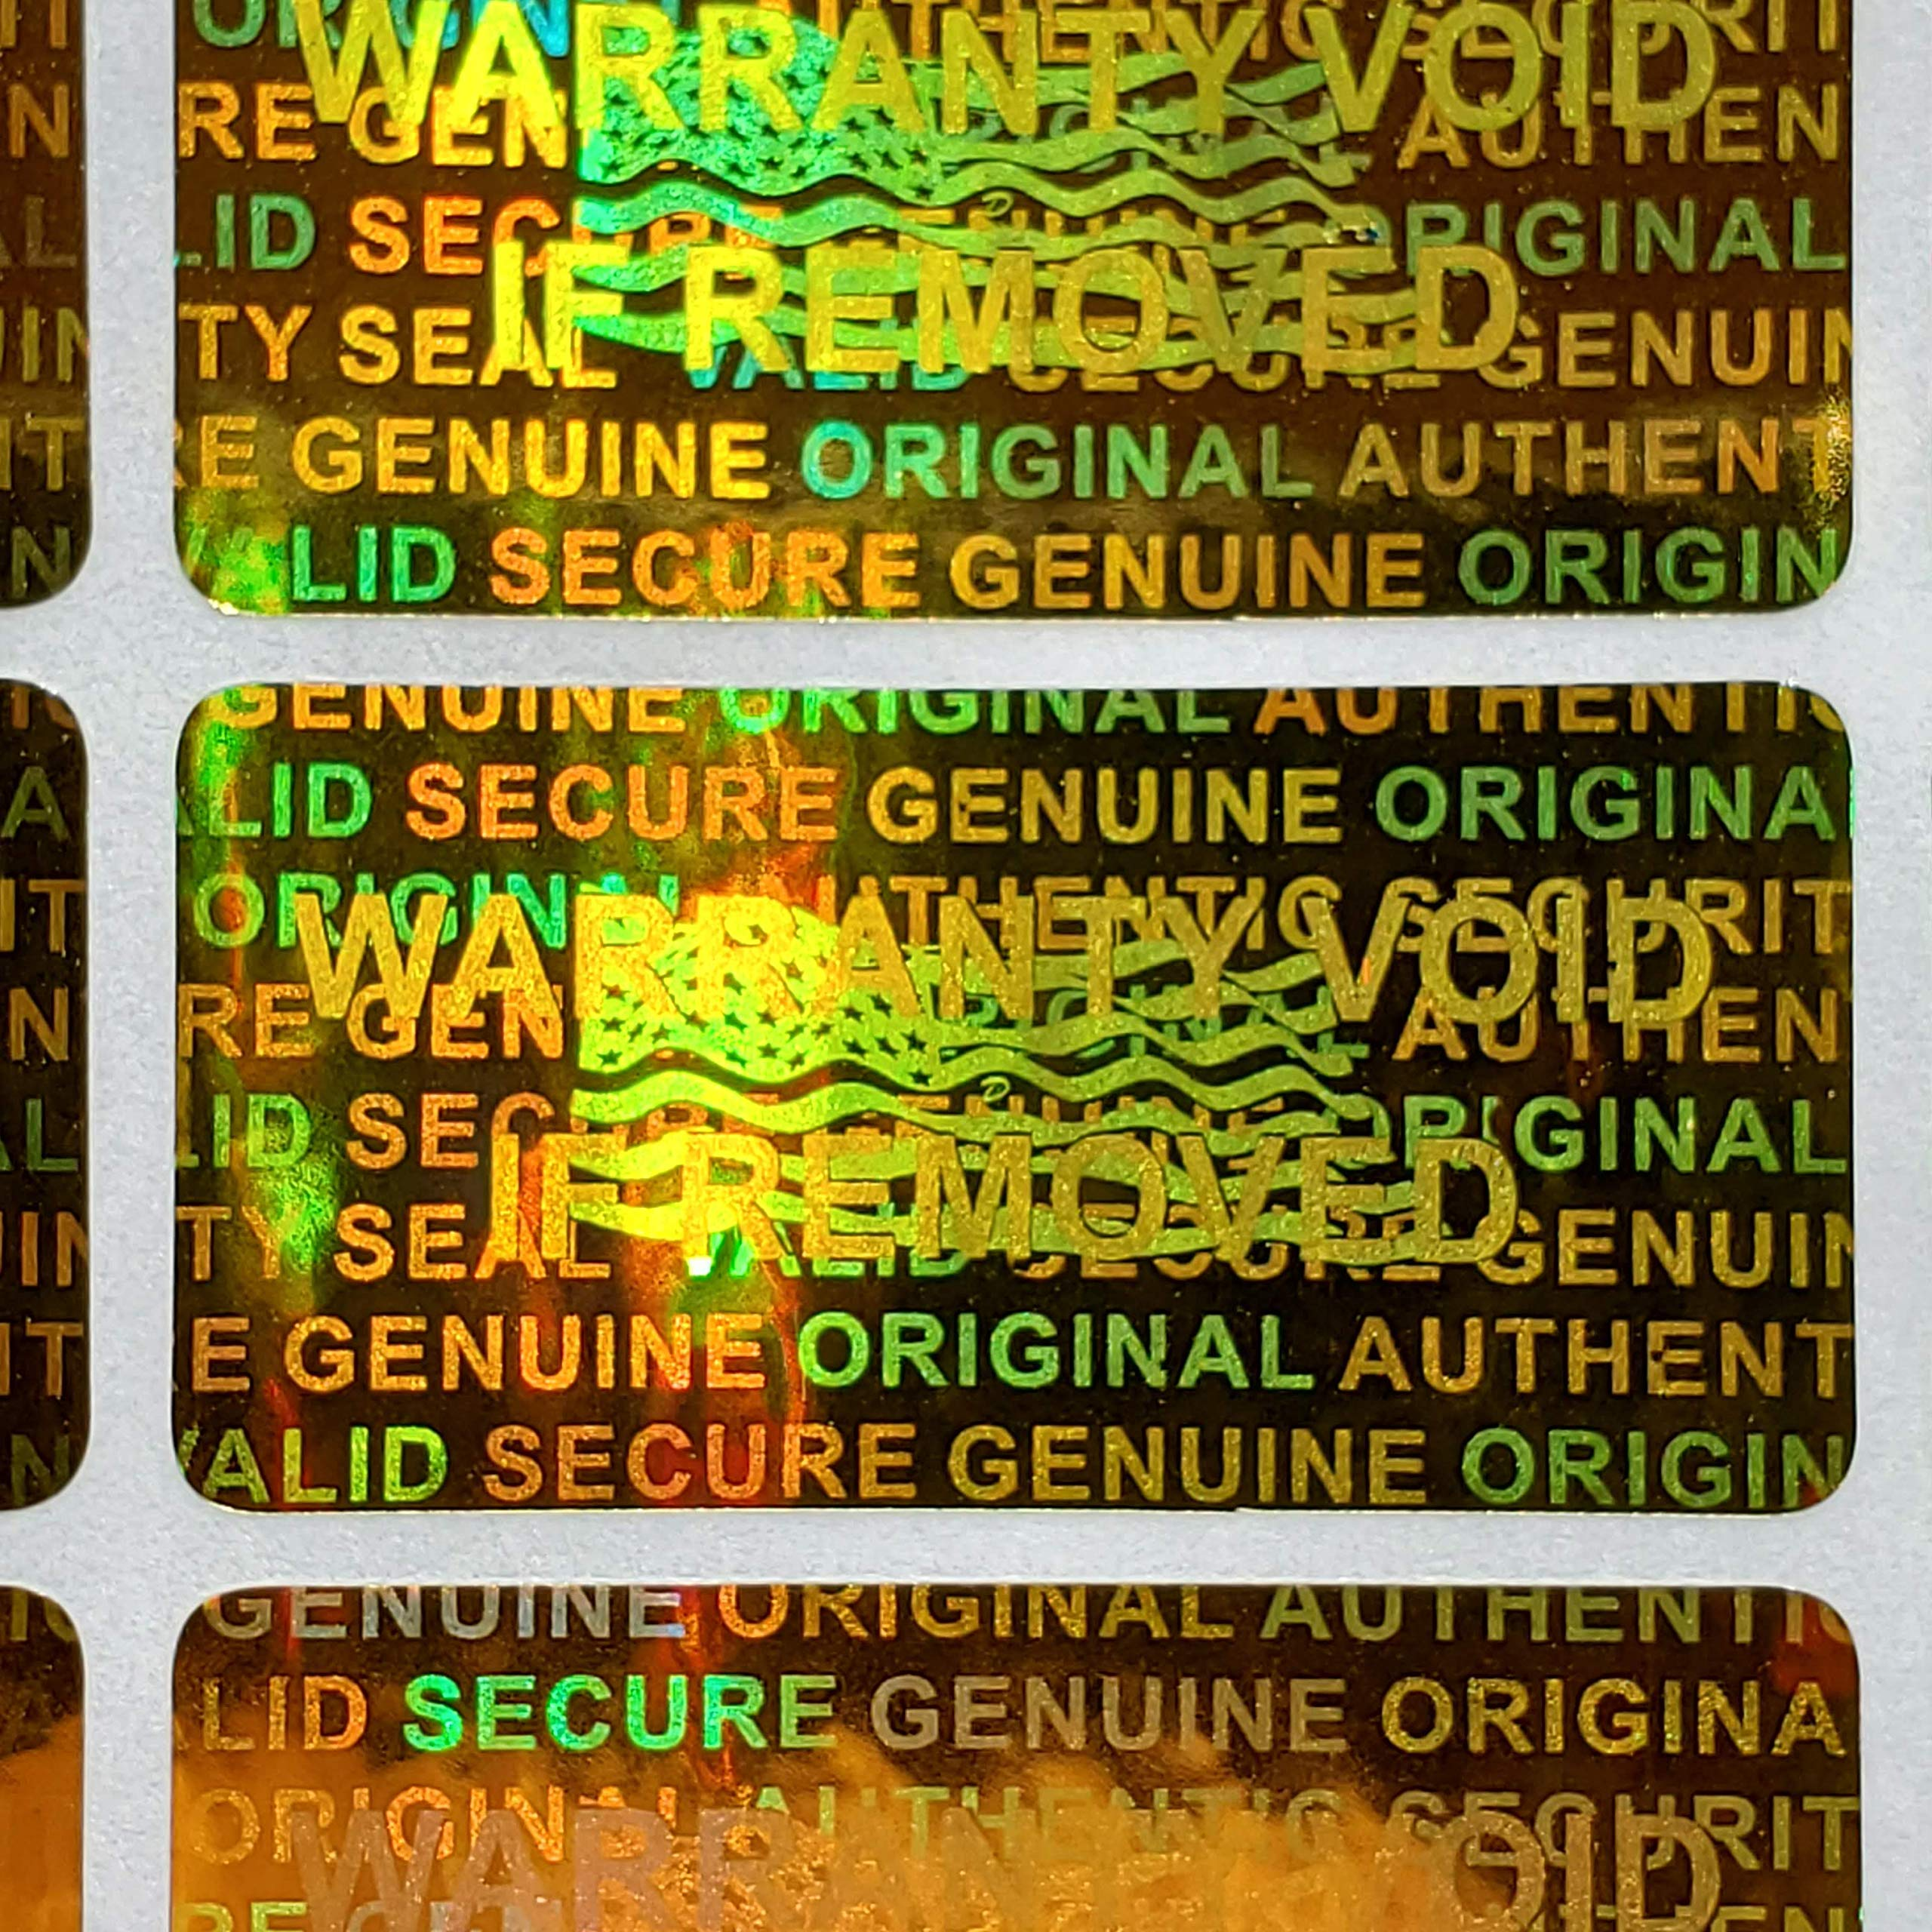 1000 Security Seal Hologram Tamper Evident Warranty Labels Stickers 15 mm x 30 mm- Dealimax Brand (Golden) by Dealimax